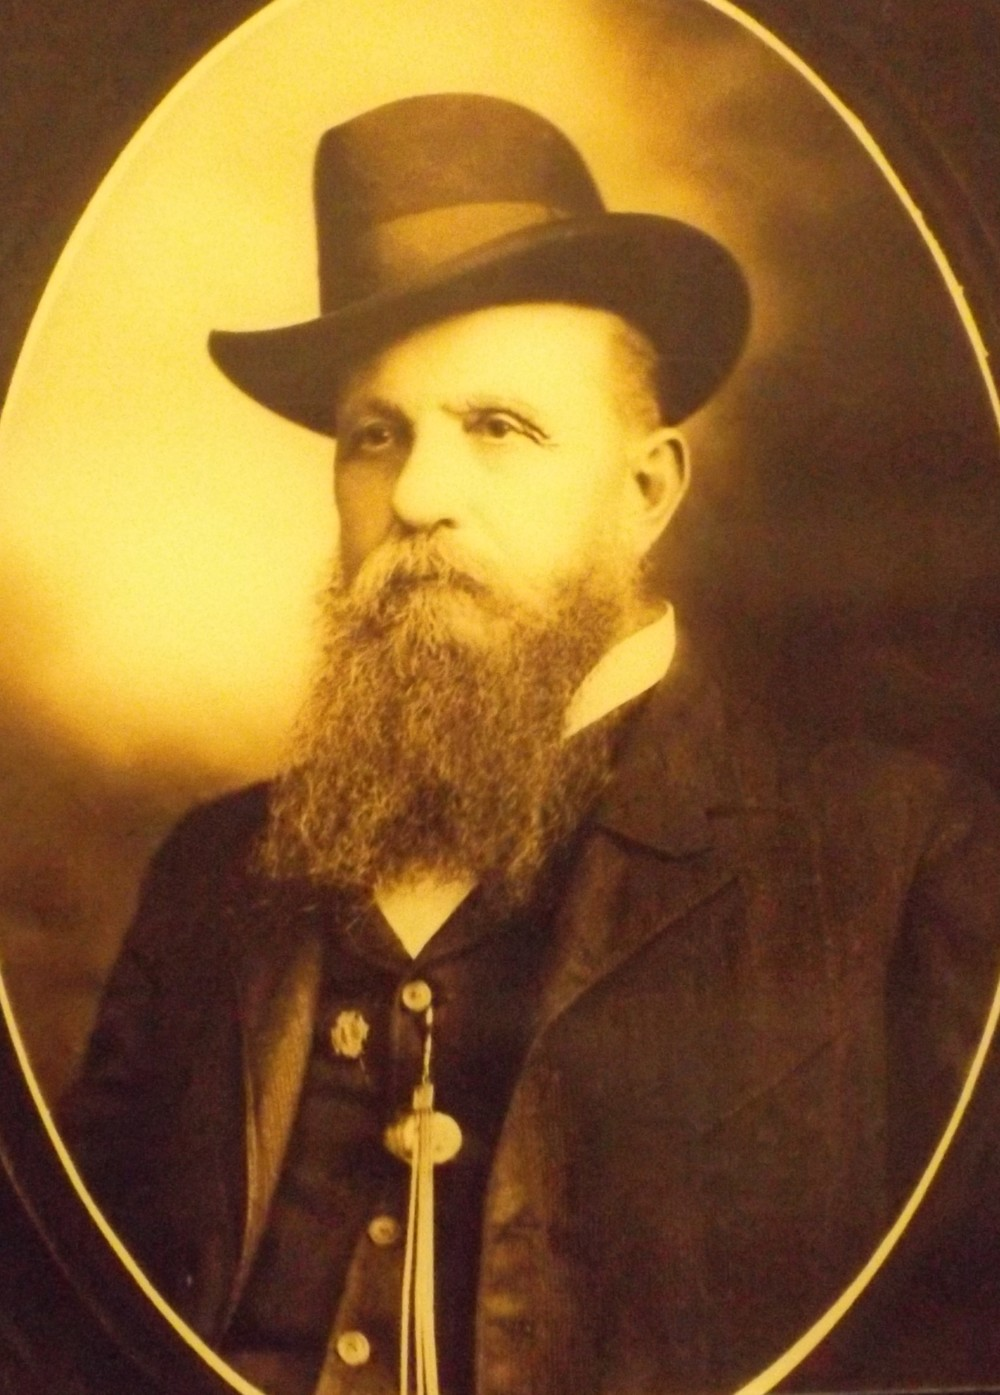 William Fuller, the General's conductor (Southern Museum of Civil War and Locomotive History)